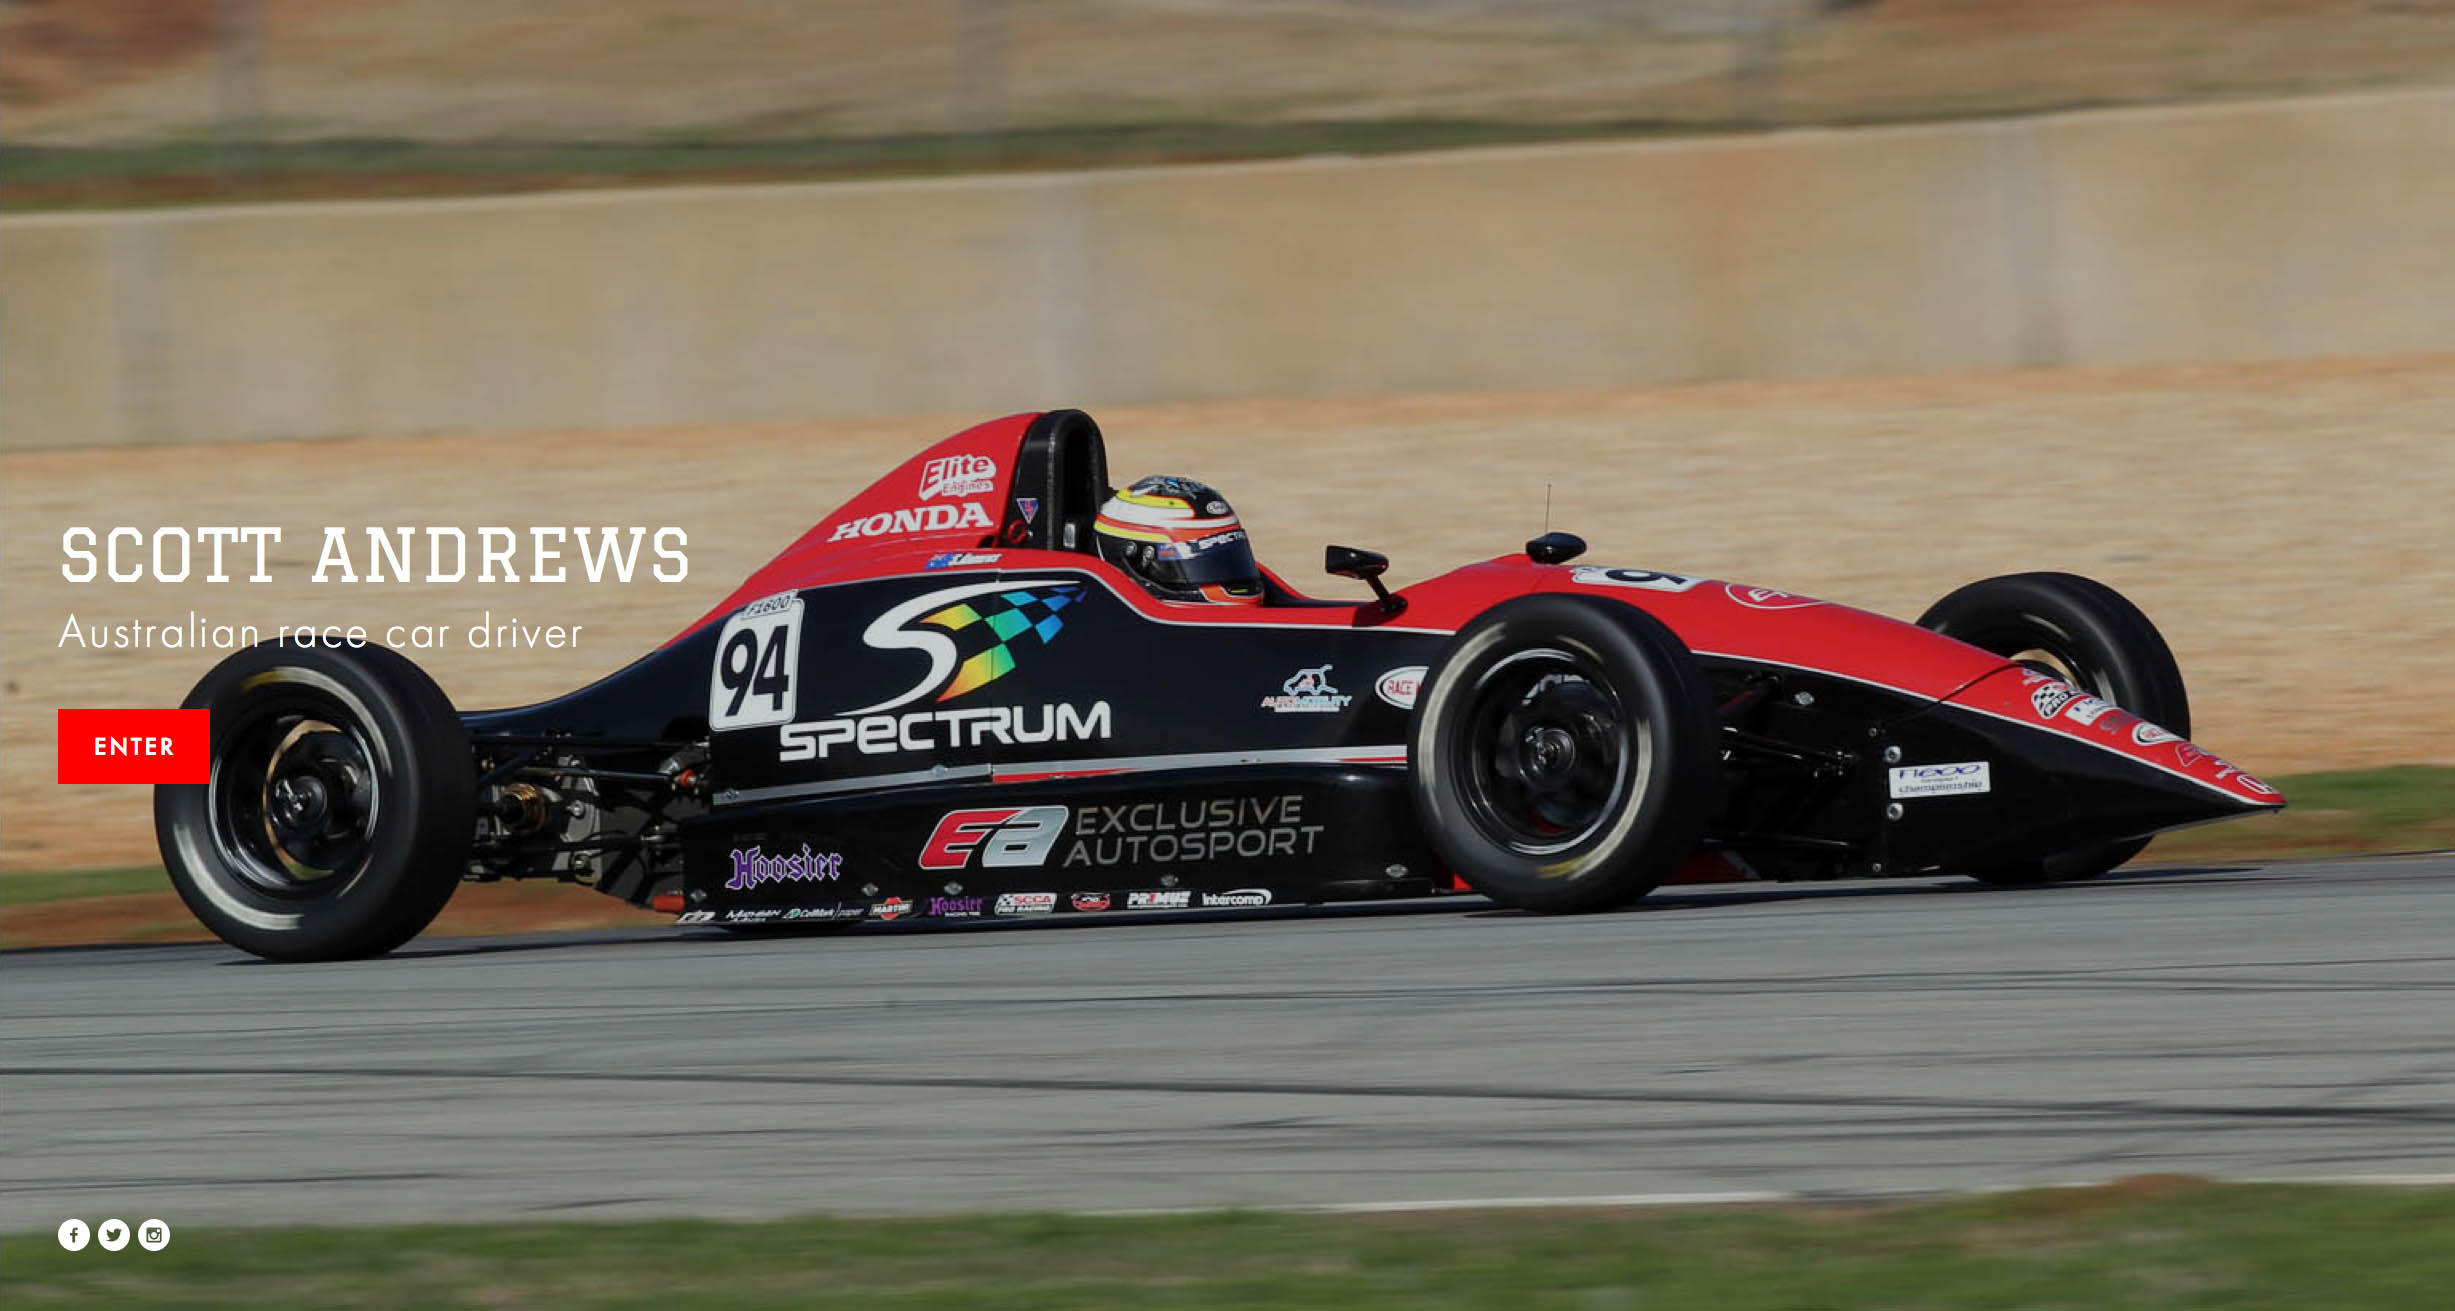 website of US 1600 CHAMPION, SCOTT ANDREWS is designed, installed and updated by PLM